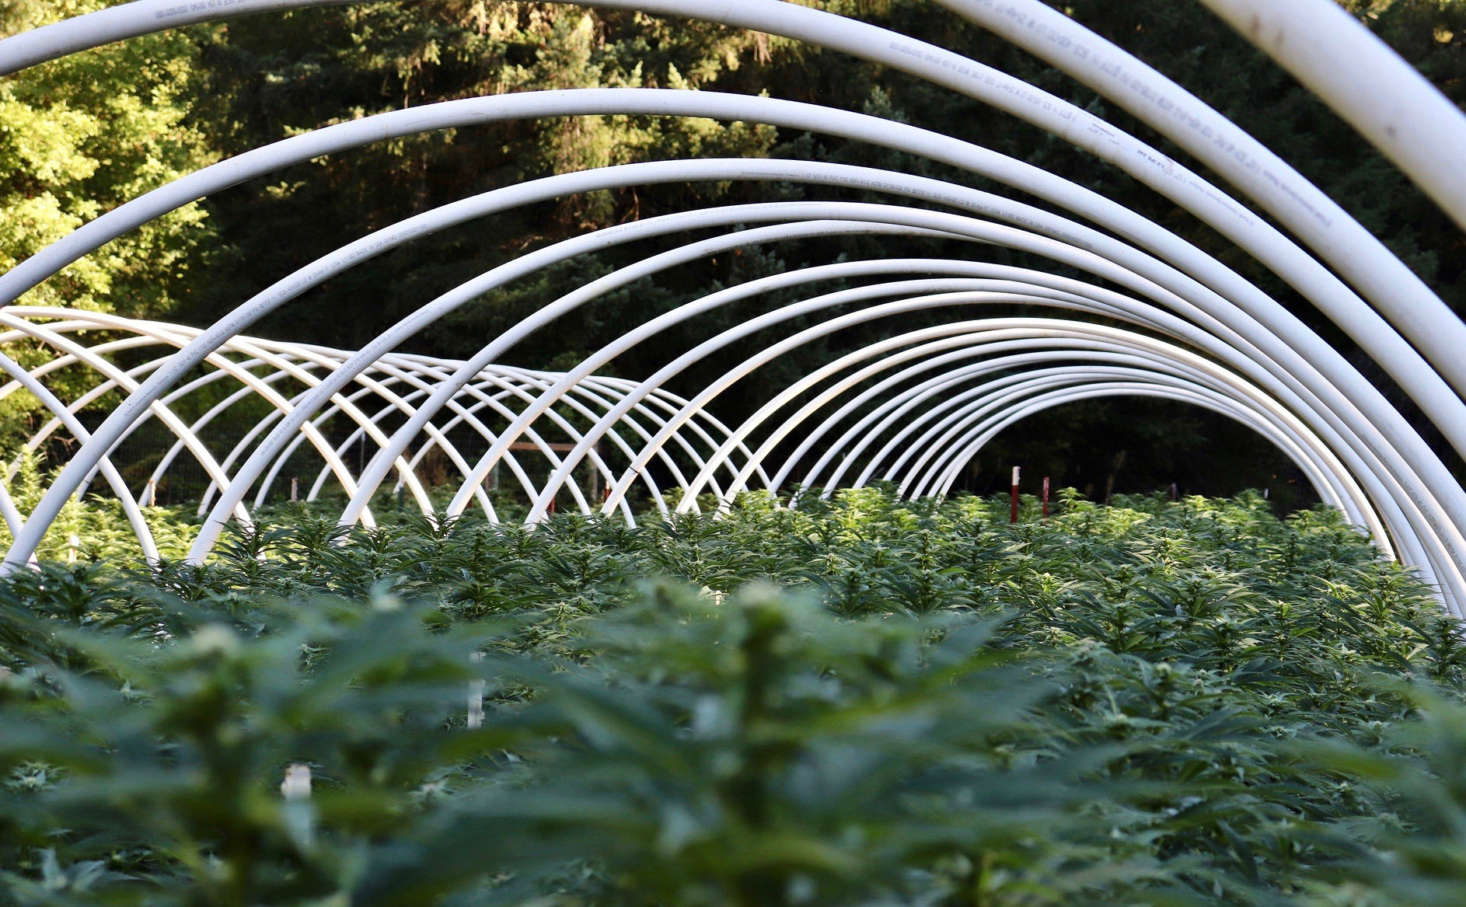 Cannabis grows in a hoop house in Humboldt county, California. Photograph by Brian Shamblen via Flickr.